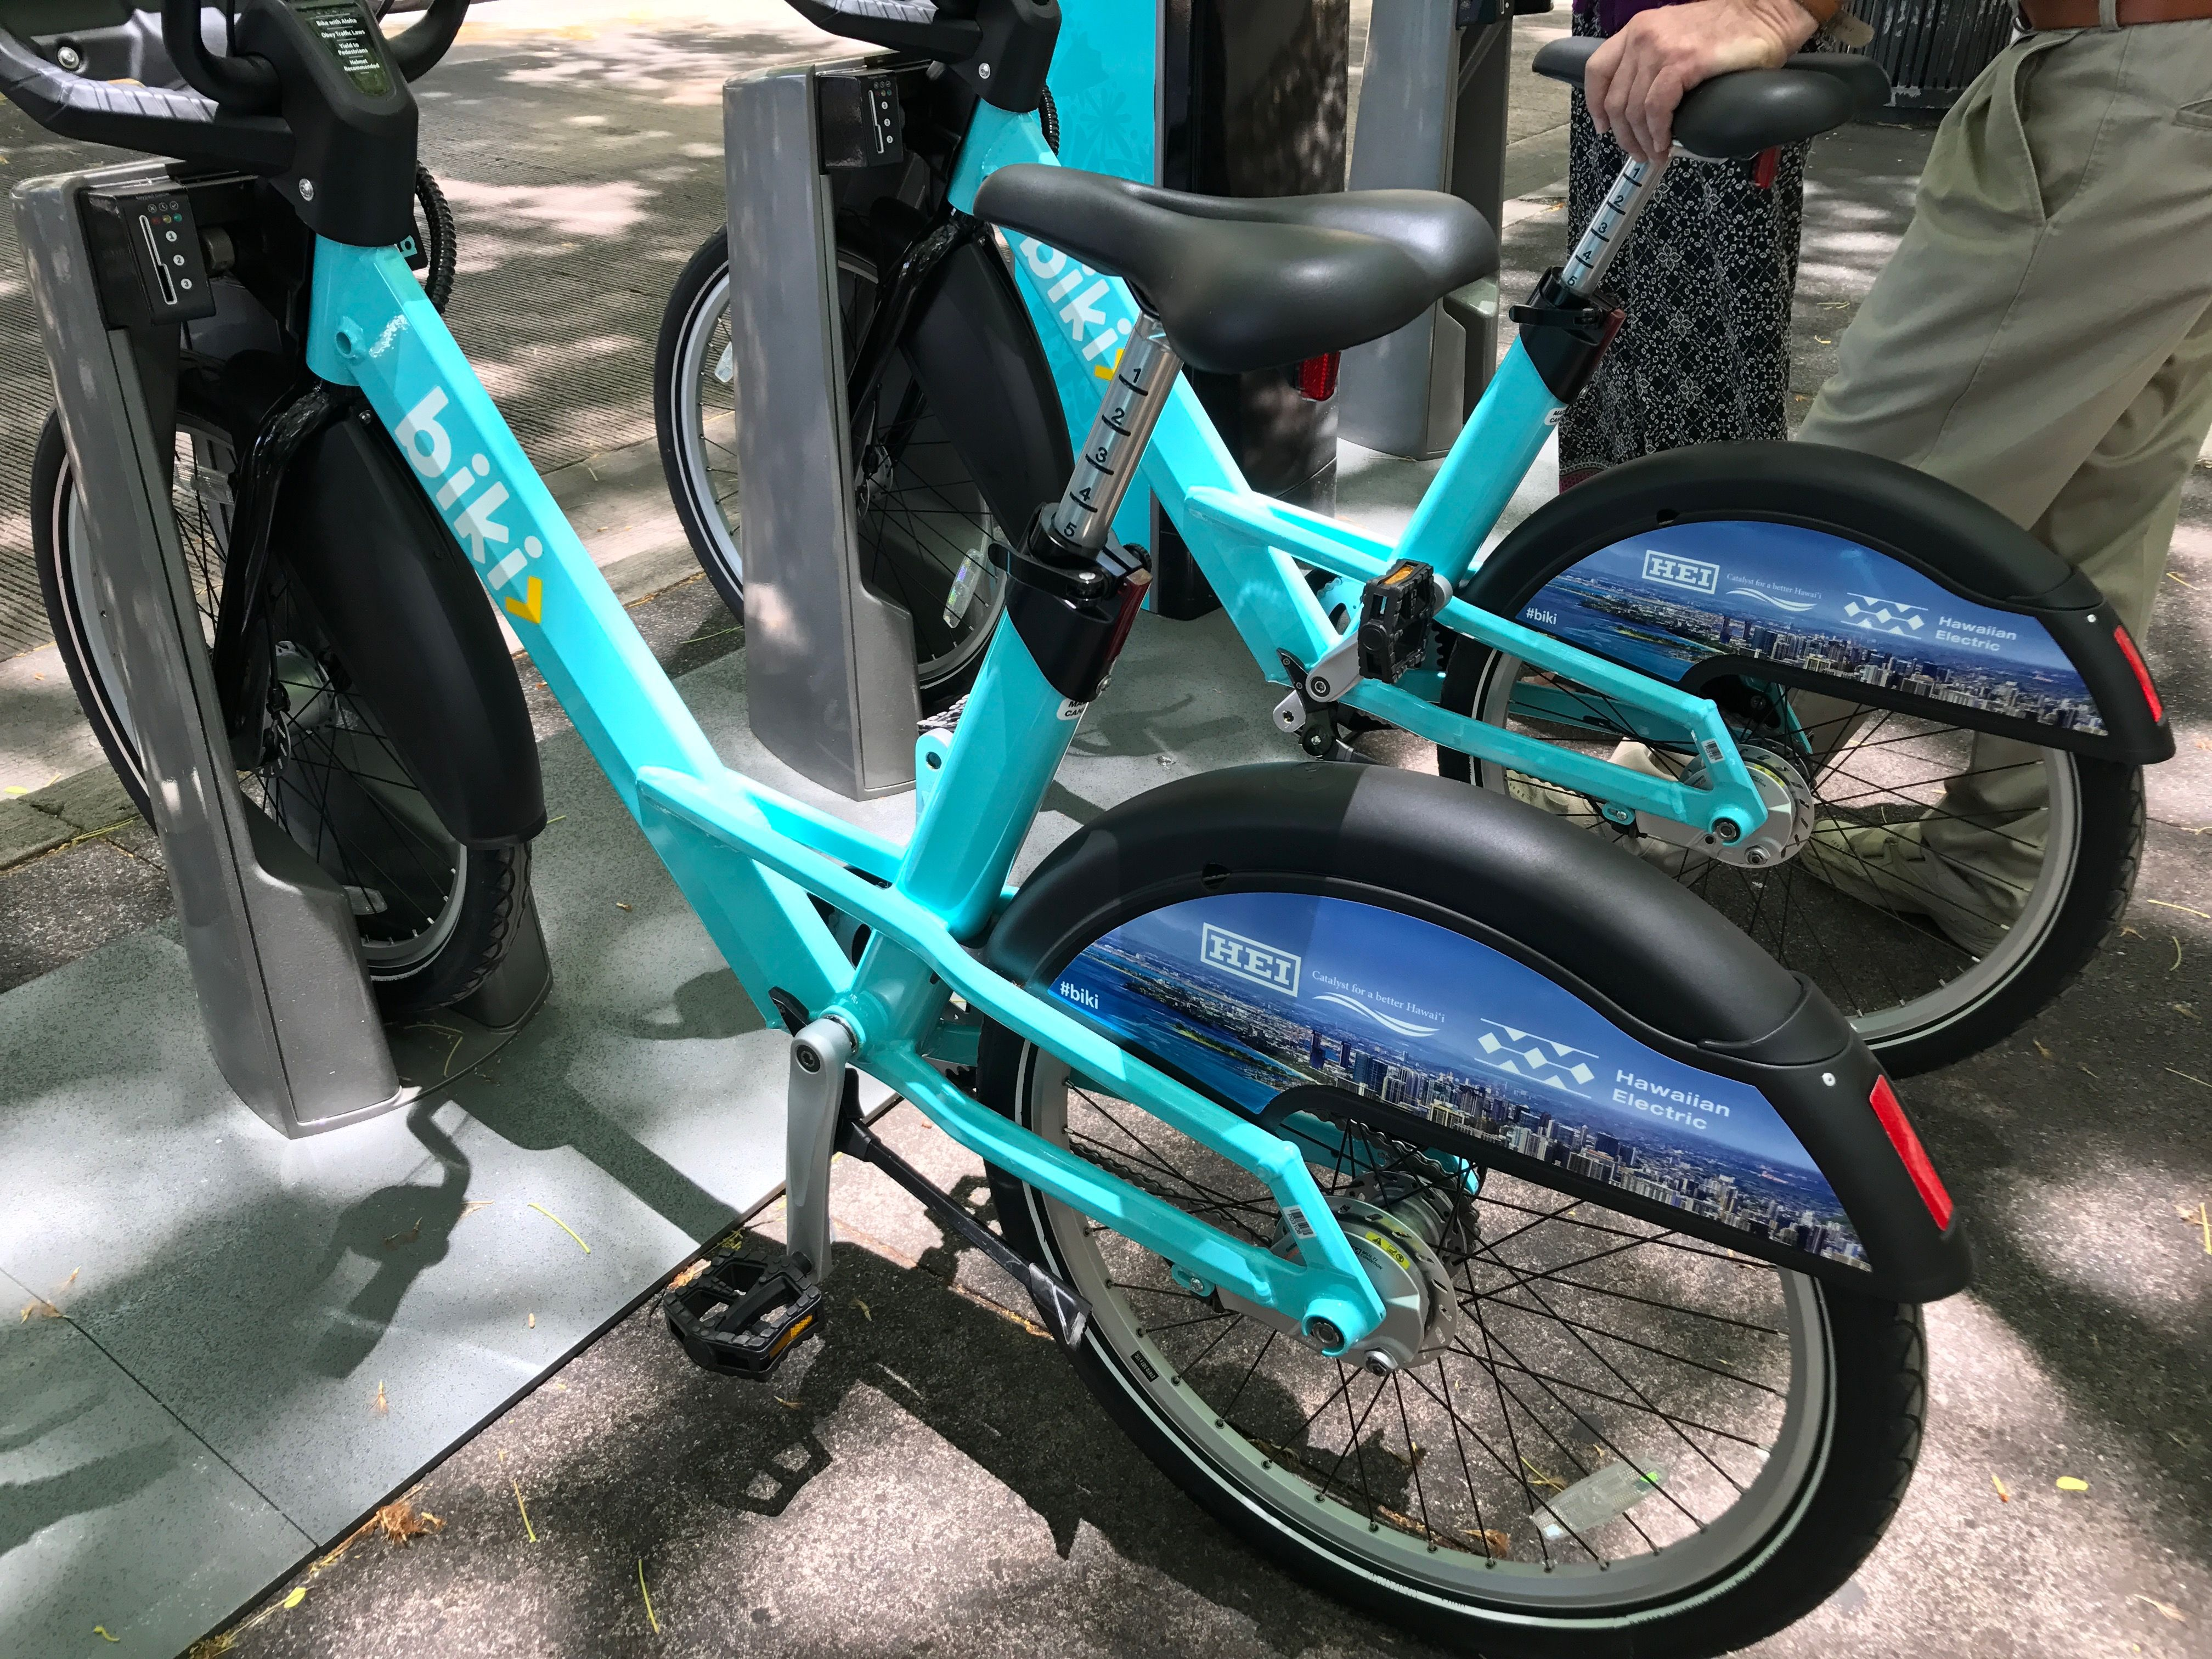 Over 1 000 Biki Bikes Are Available On Oahu Thanks To Bikeshare